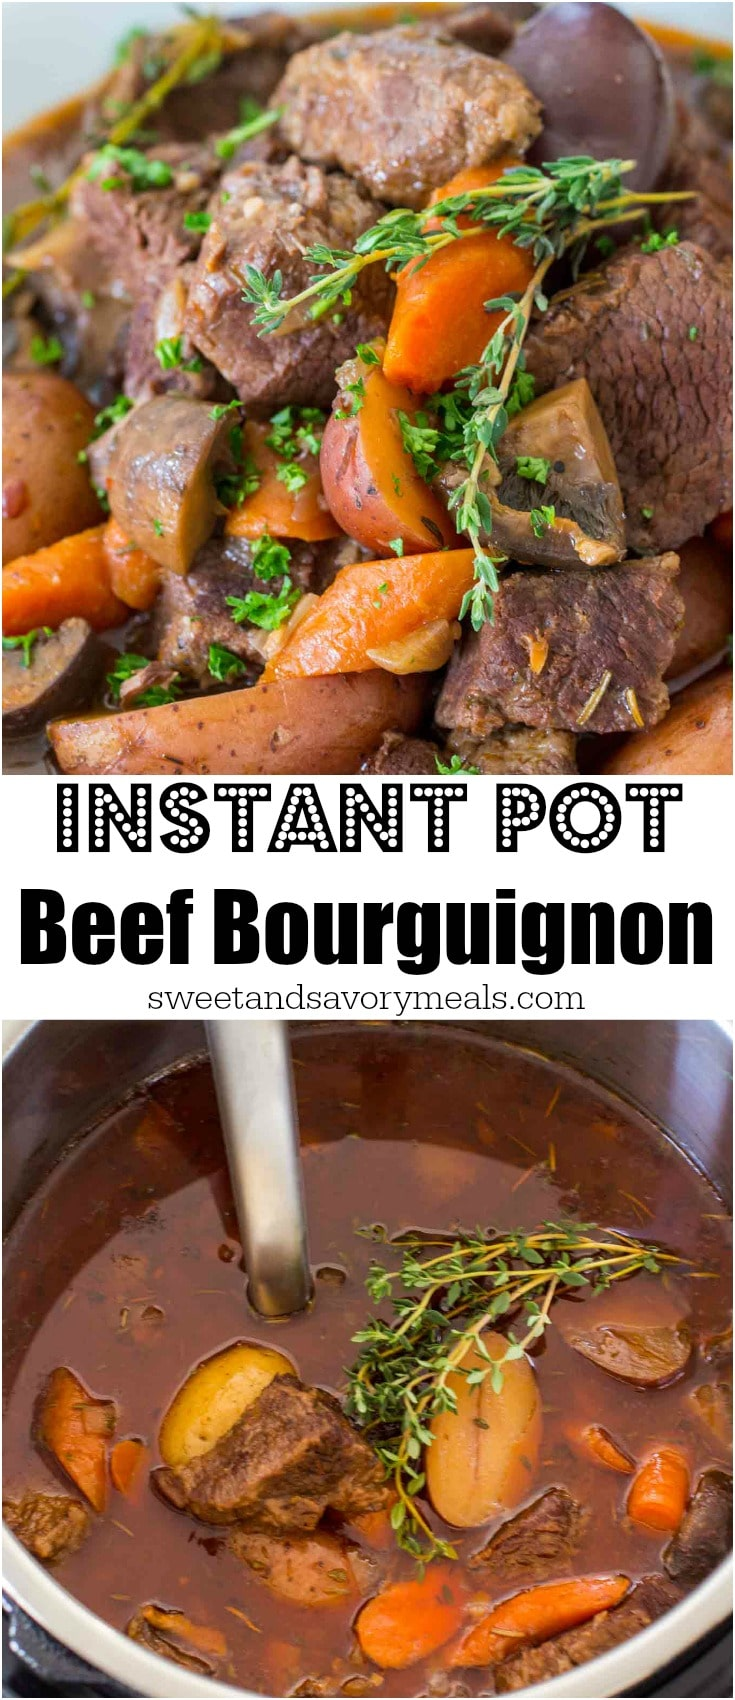 Instant Pot Beef Bourguignon is one delicious meal, made in a fraction of the time. Tender, melt in your mouth pieces of beef, cooked with veggies in a wine broth.